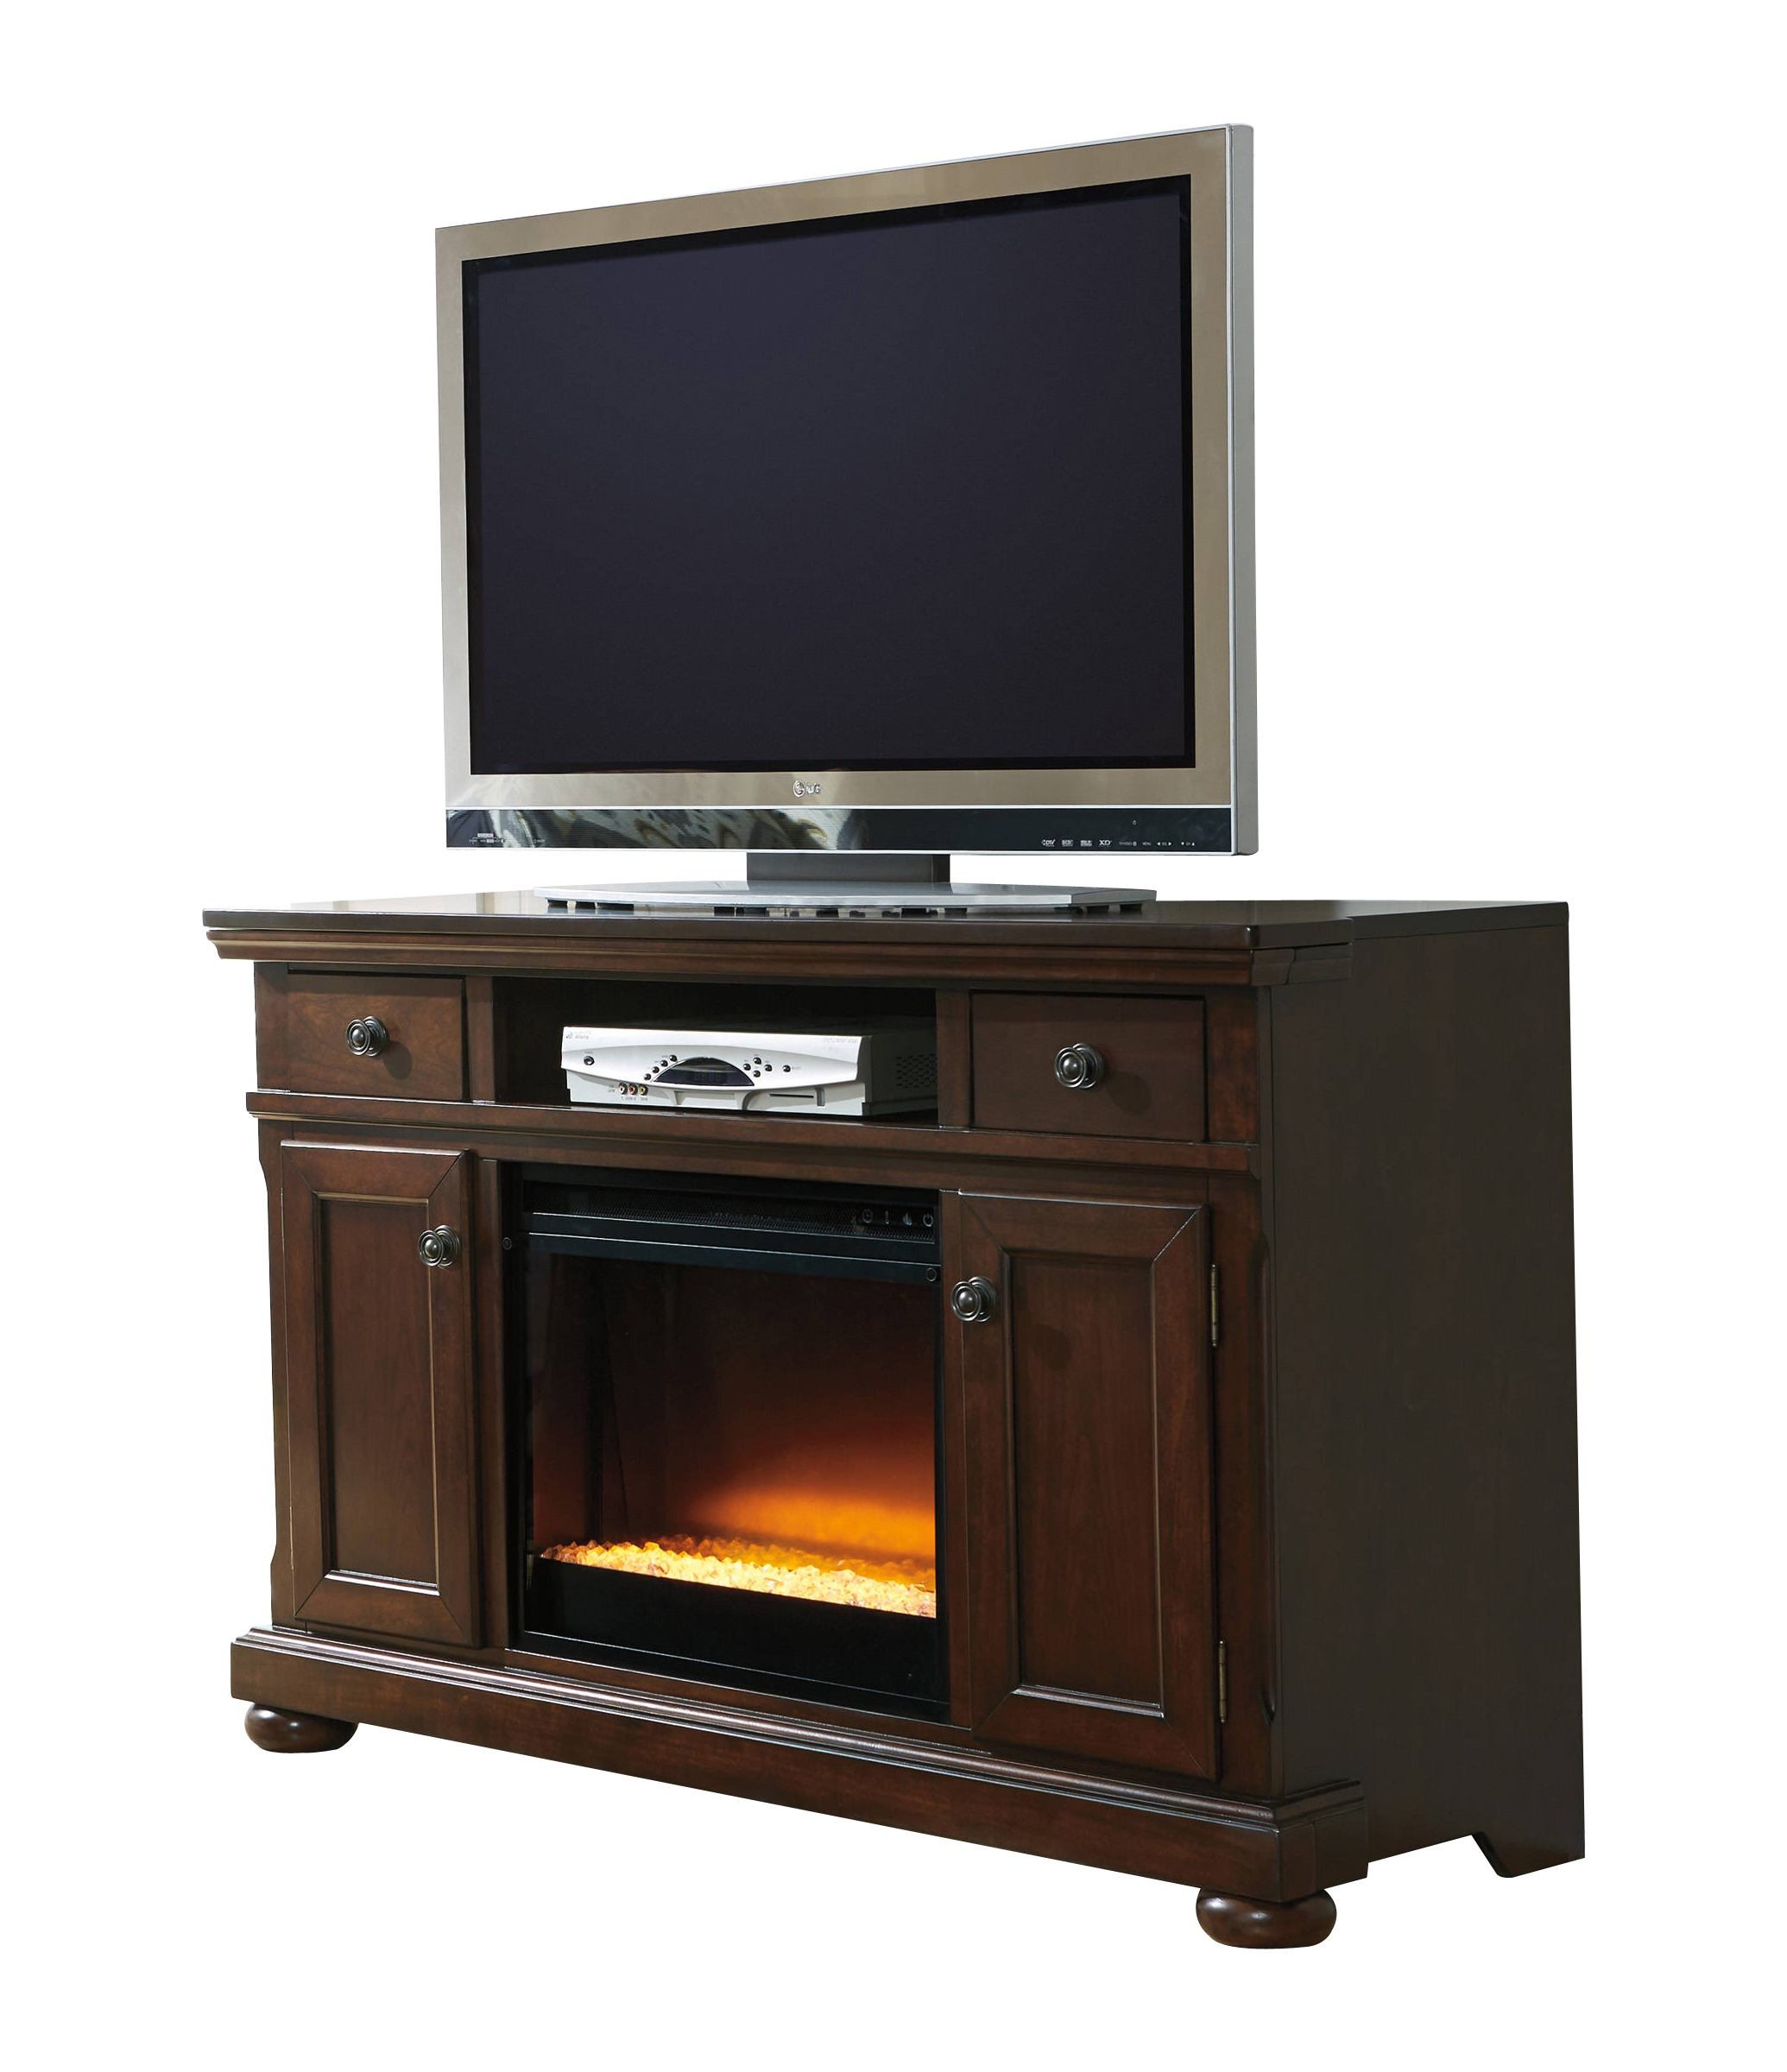 Ashley Furniture Porter Brown Lg Tv Stand With Fireplace The Classy Home